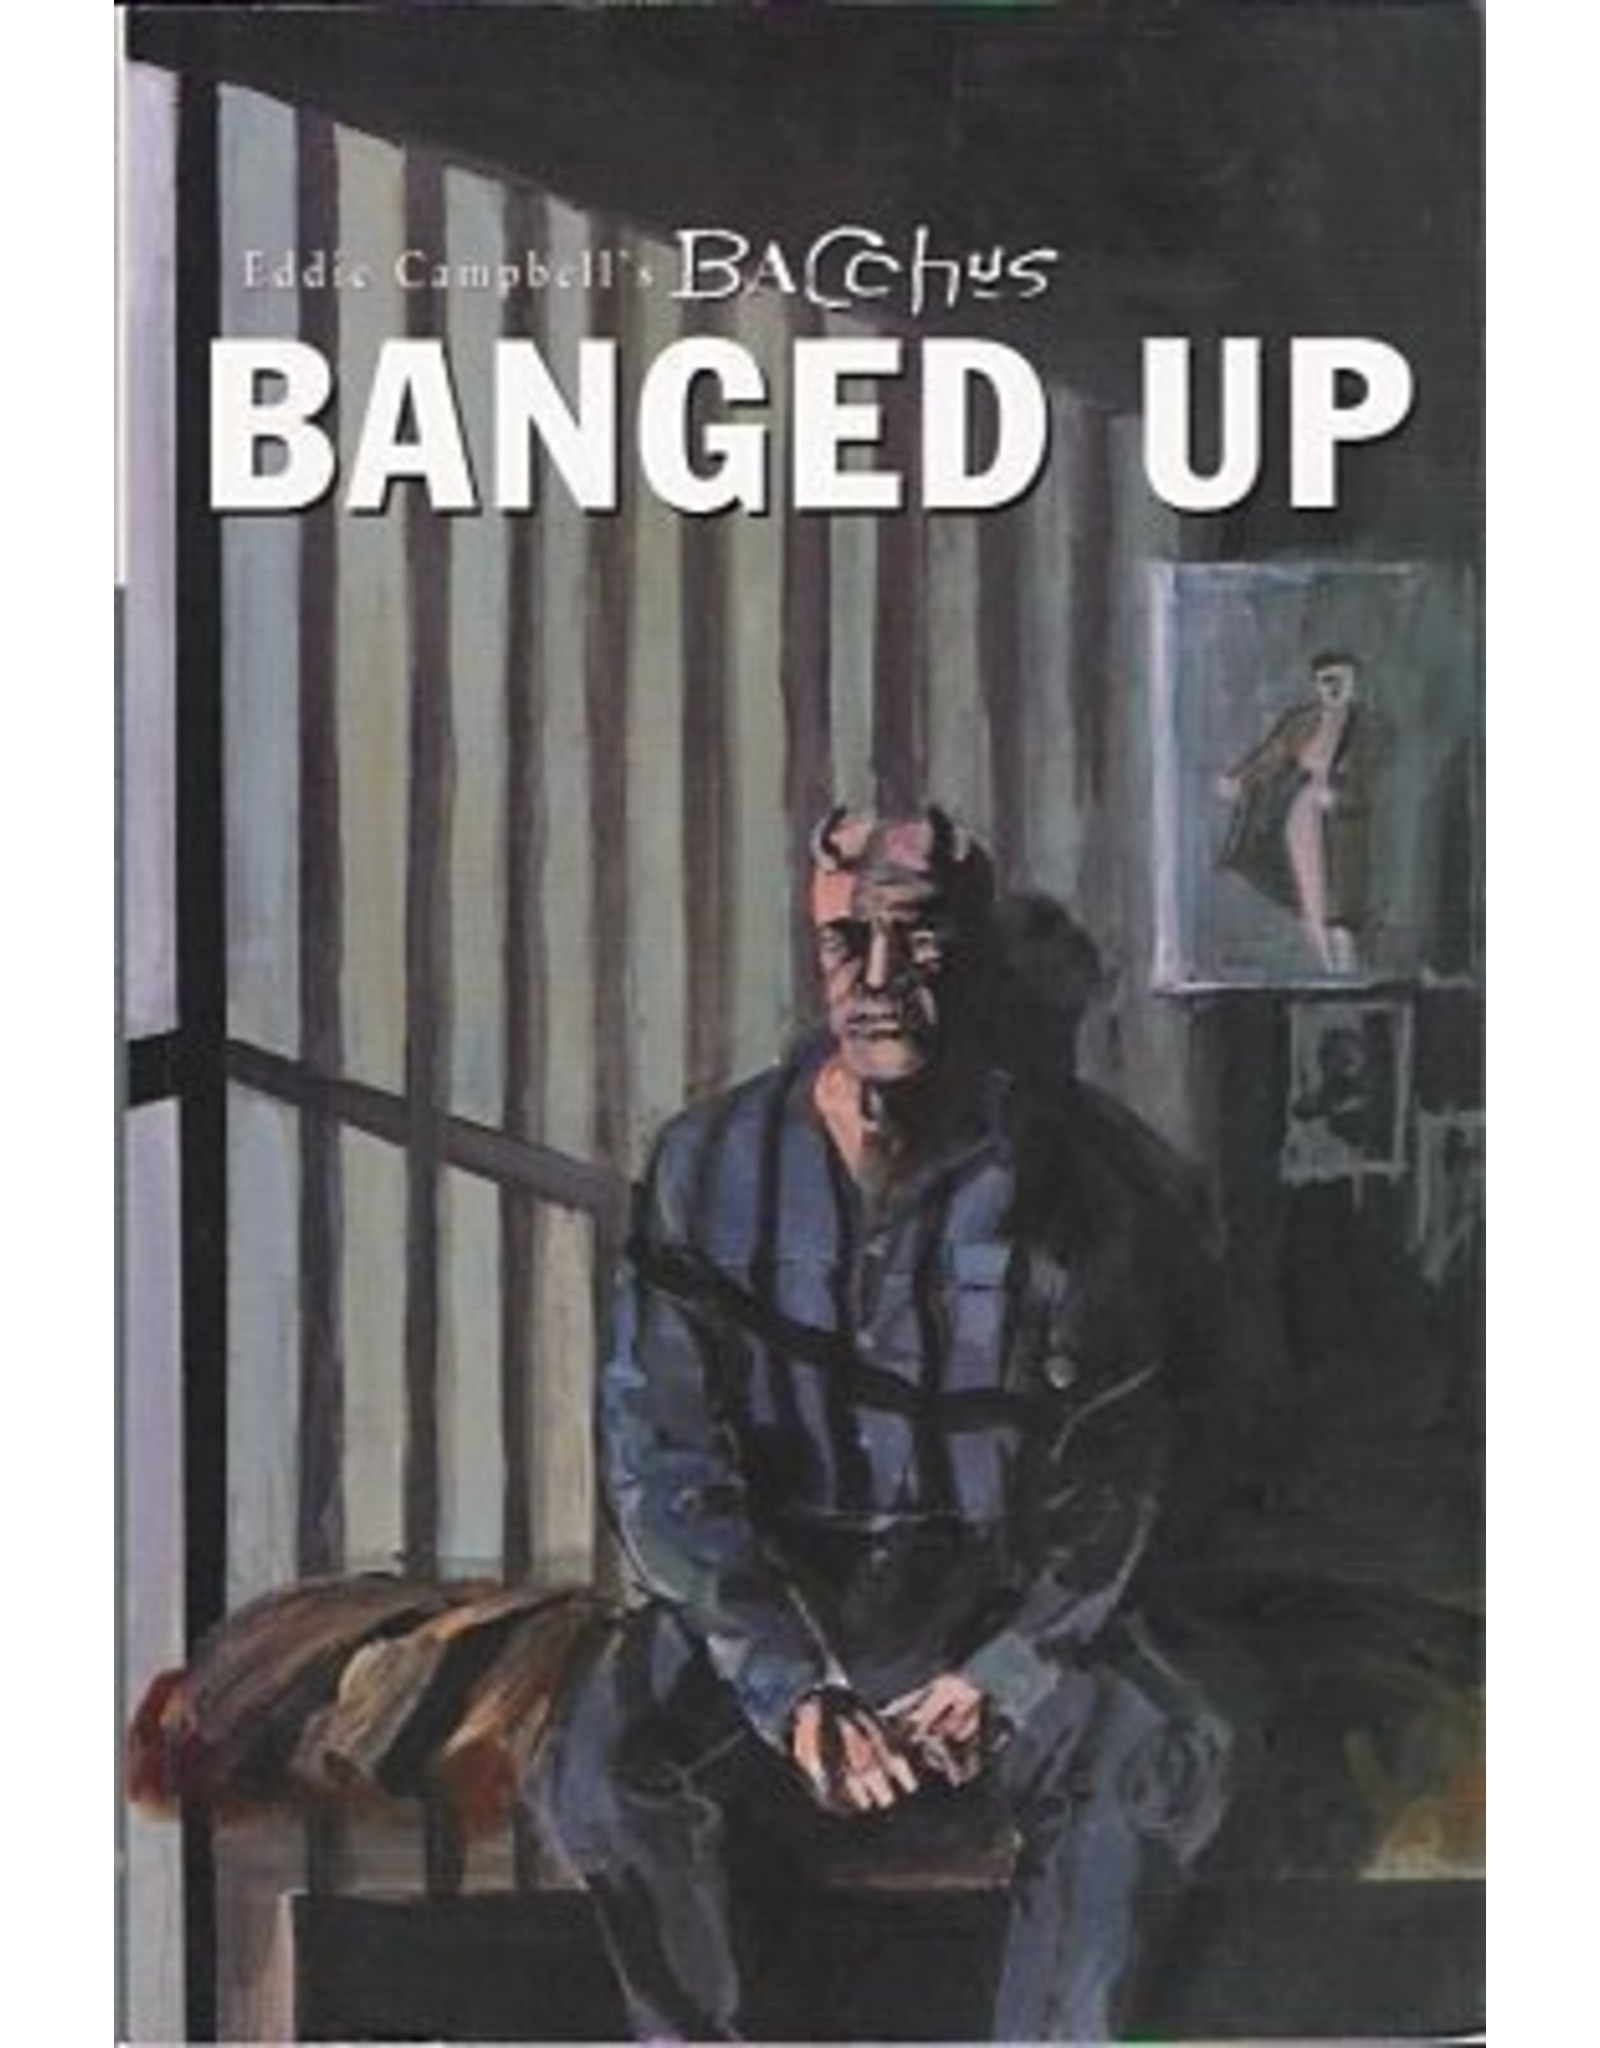 EDDIE CAMPBELLS COLLECTED BACCHUS VOL 10 BANGED UP